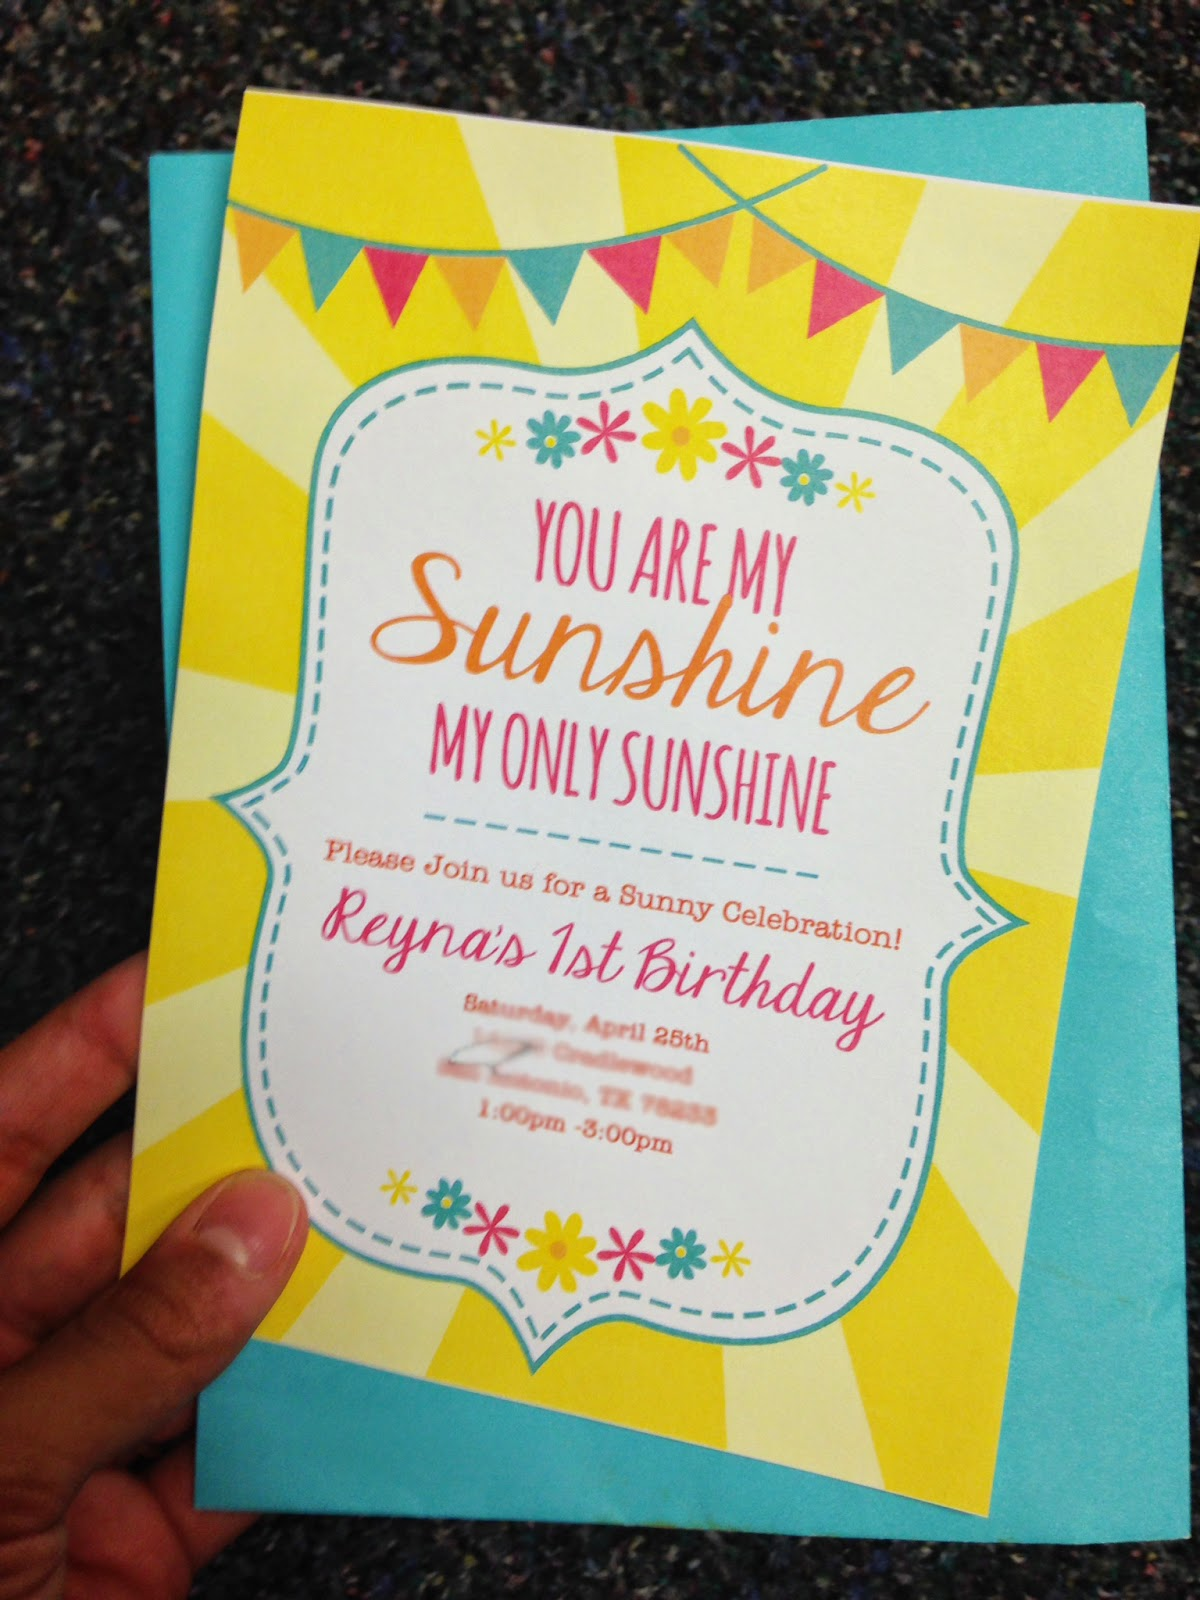 e Life to Love You are my Sunshine Birthday Party